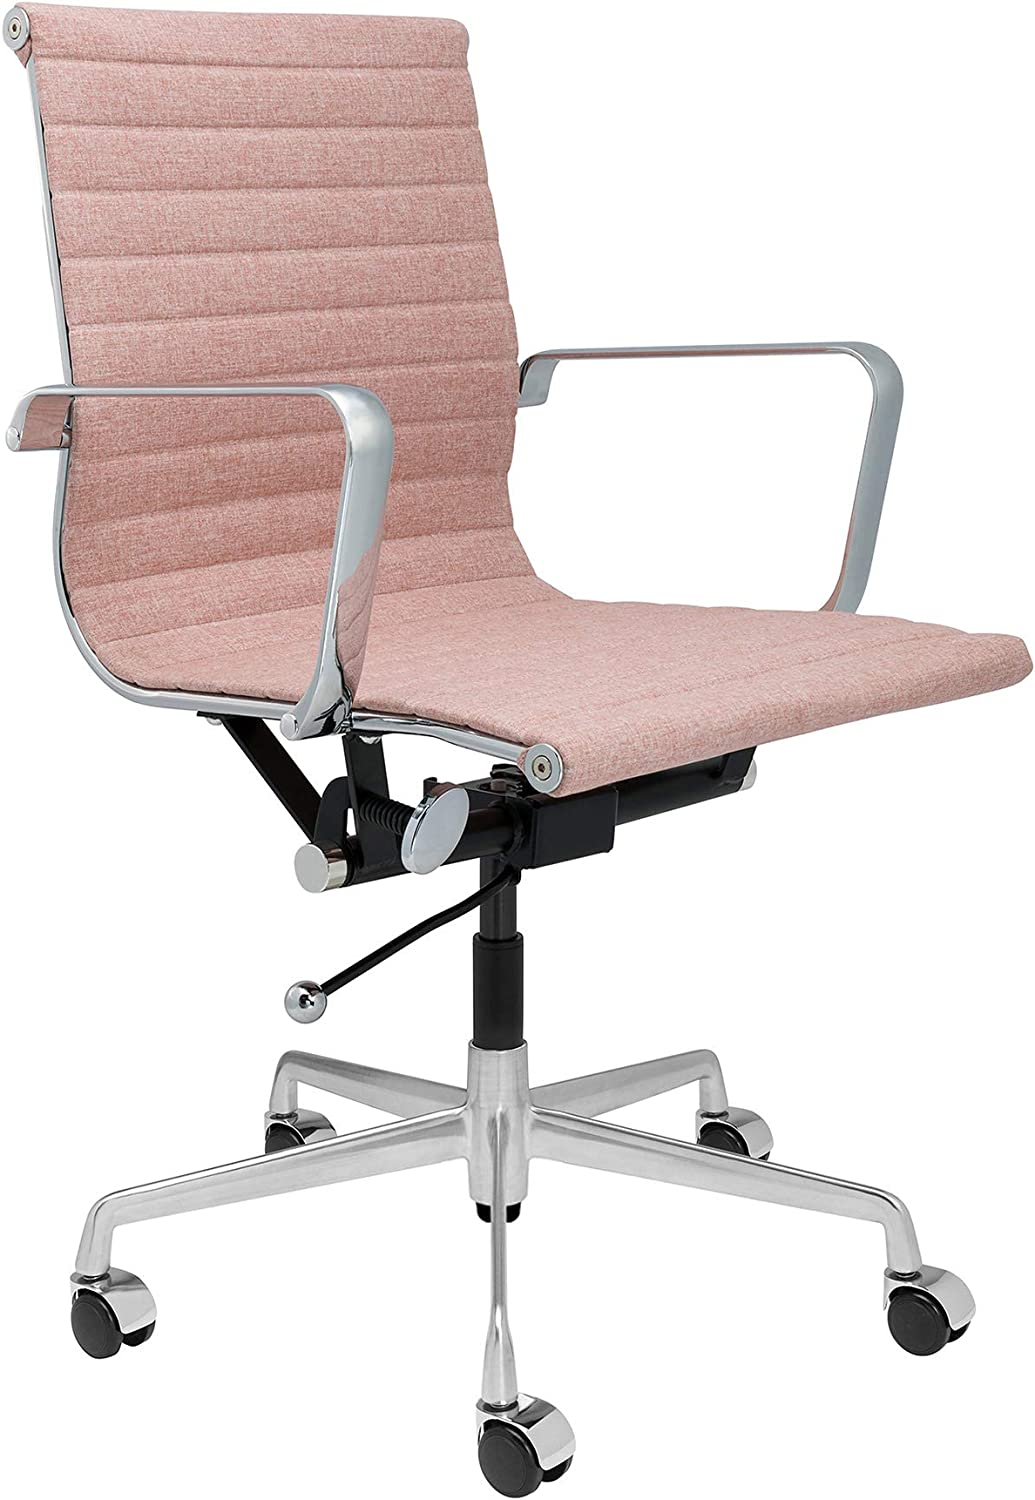 SOHO Ribbed Management Office Chair (Coral Pink Fabric)